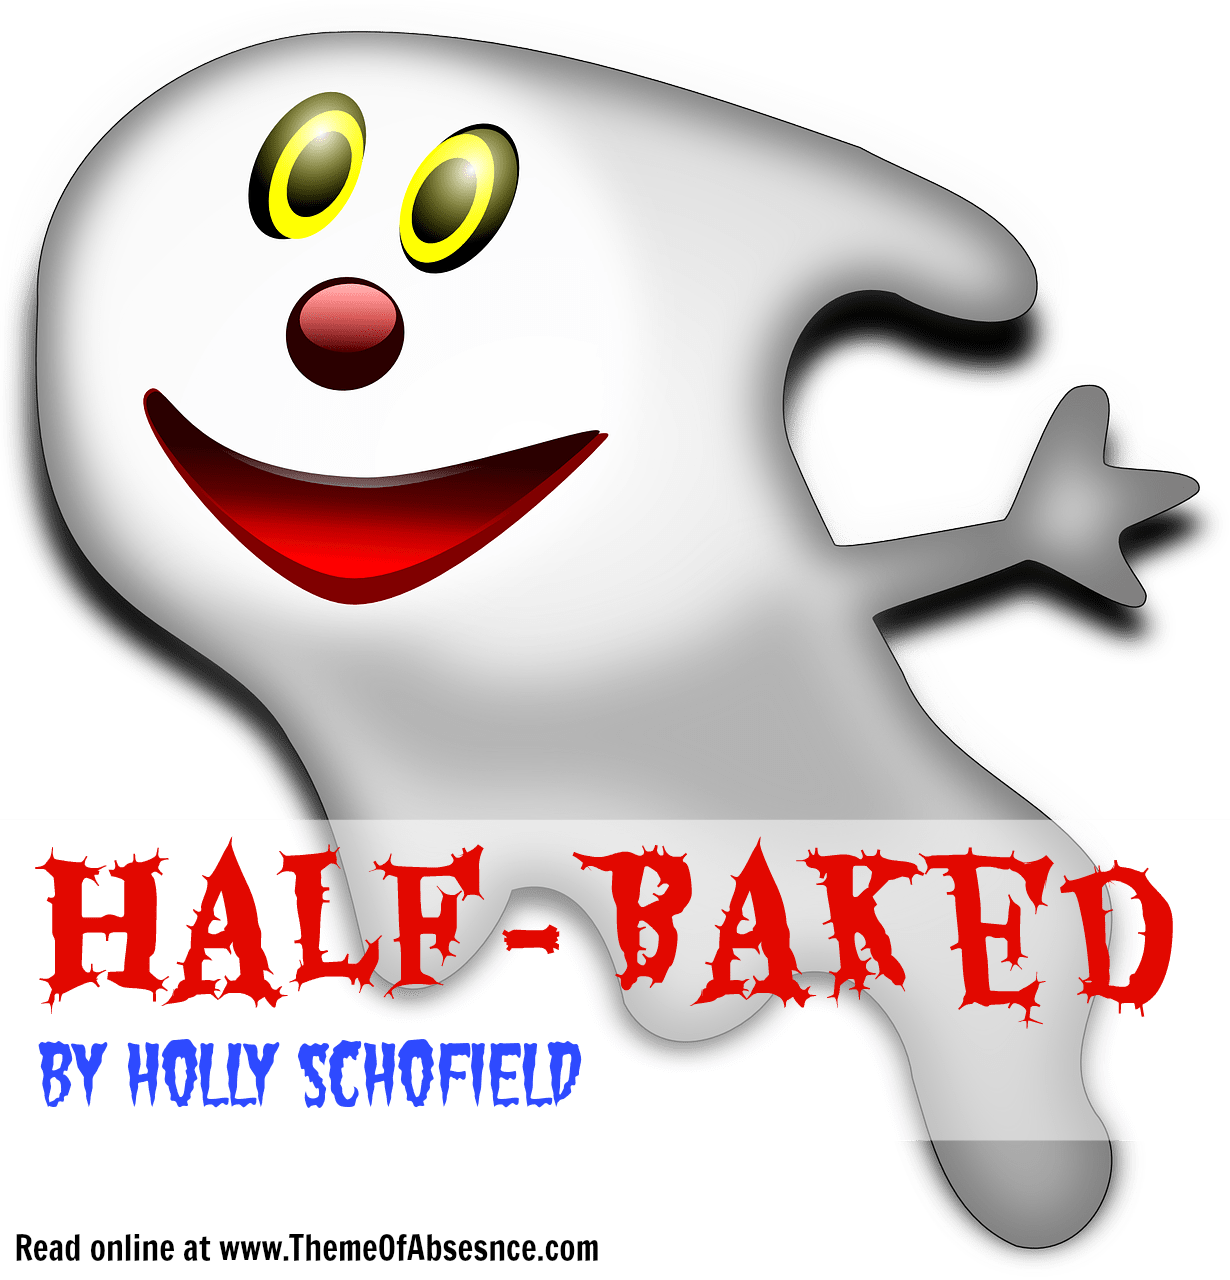 """Half-Baked"" A short story by Holly Schofield. Read online at Theme of Absence . com."